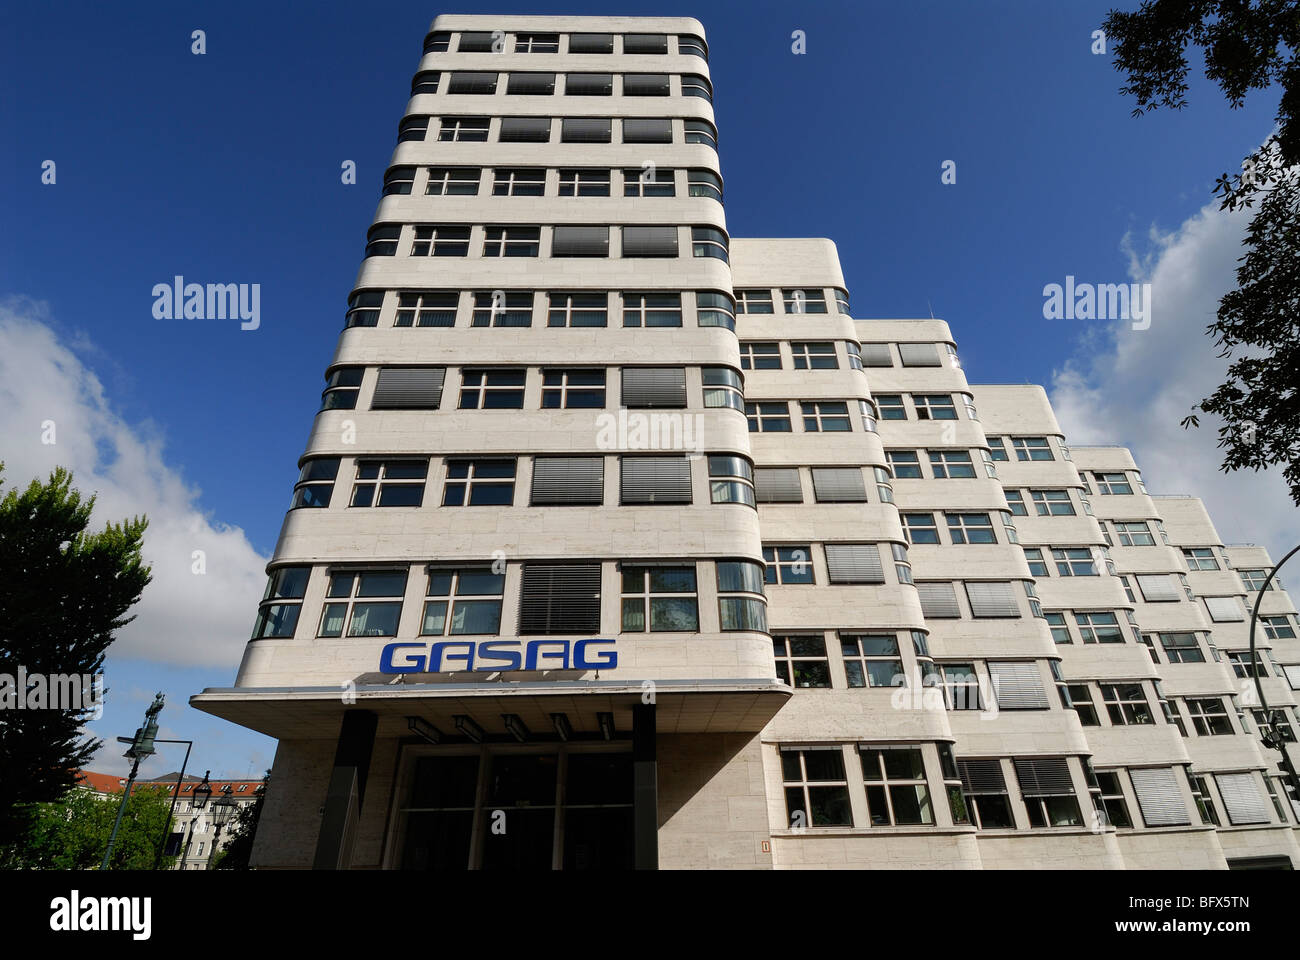 Berlin. Germany. Shell-Haus modernist architectural building 1931. Architect Emil Fahrenkamp. - Stock Image